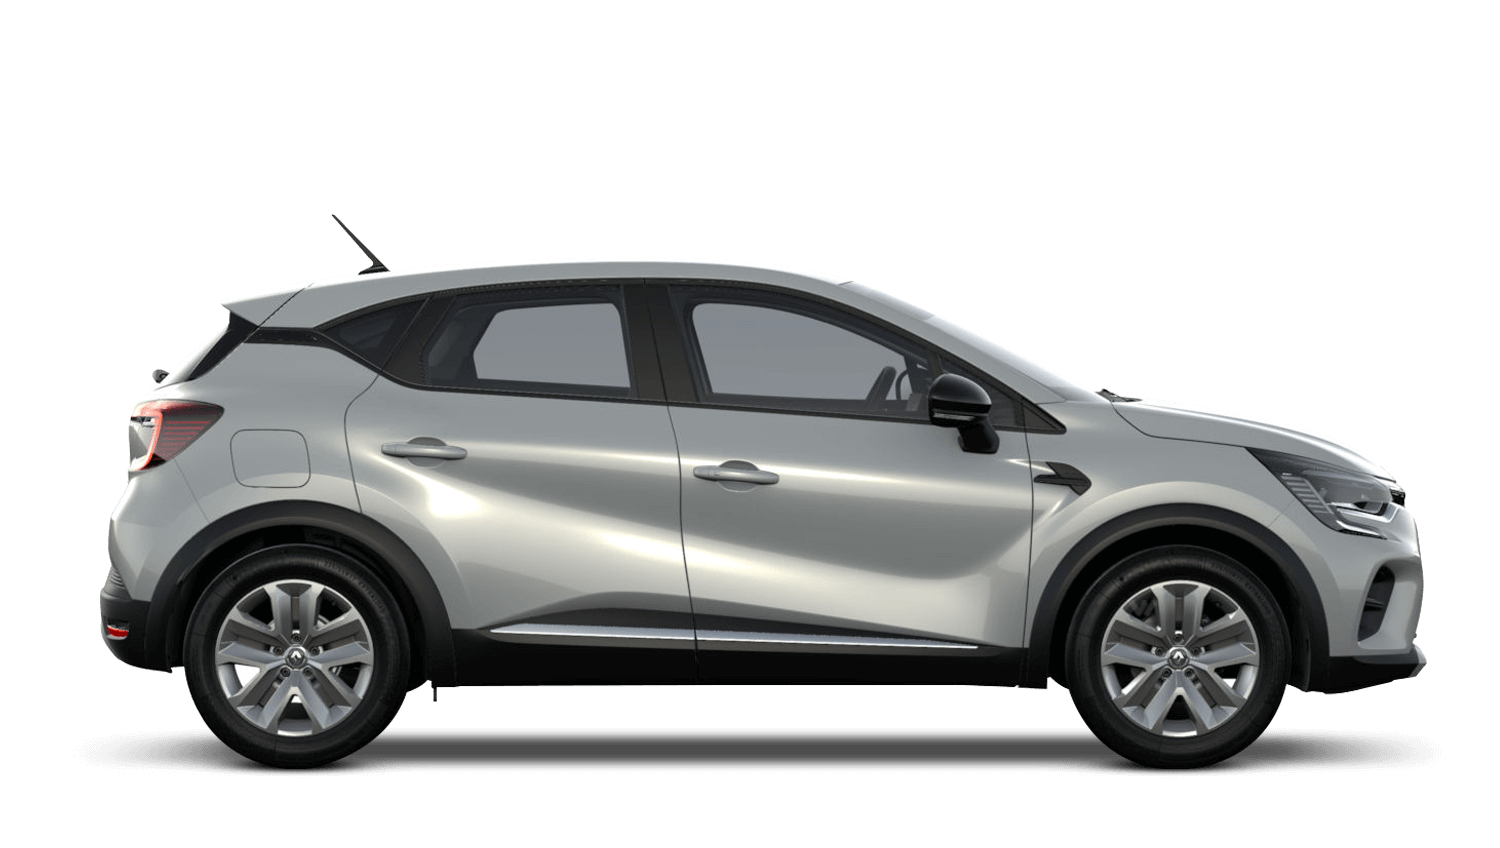 Highland Grey All-New Renault CAPTUR